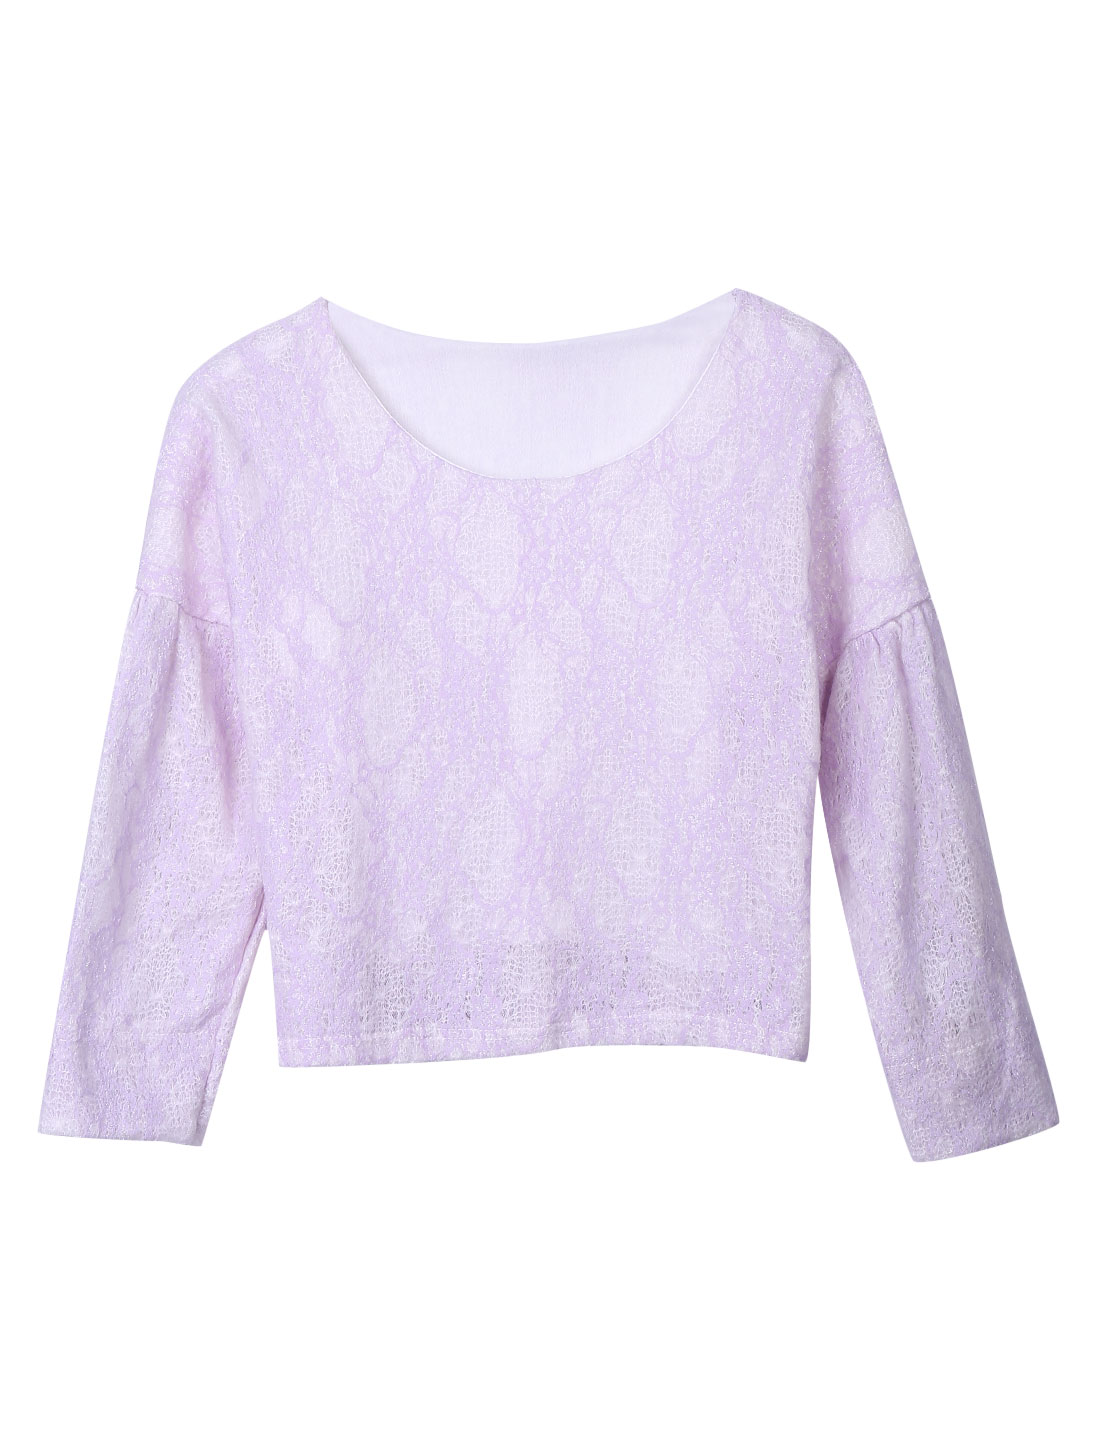 Women Round Neck Long Sleeves Trendy Slipover Top Lilac S